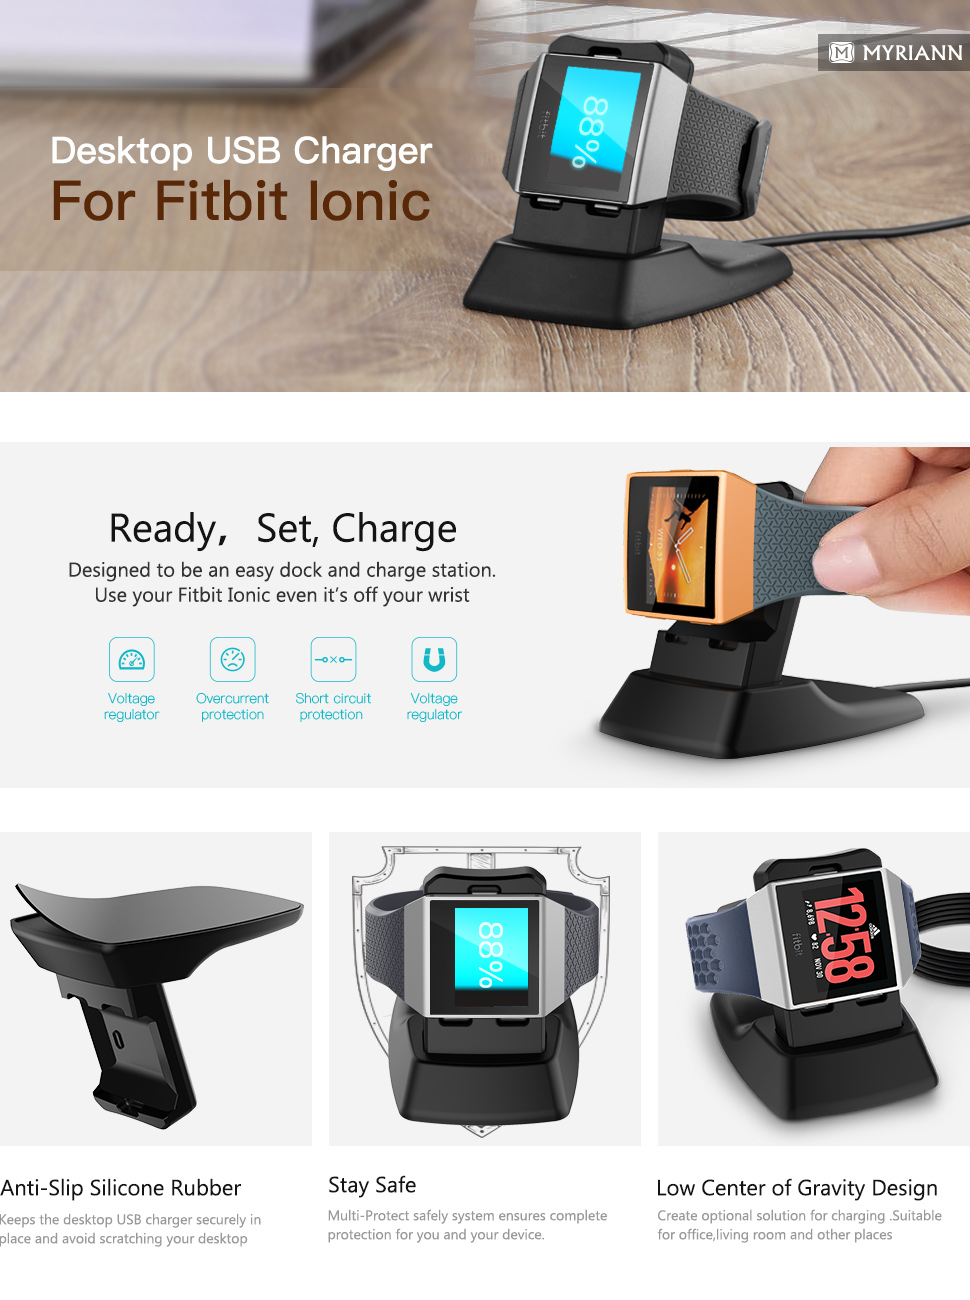 Fitbit Ionic Charger Xms471 Myriann Charging Stand Adidas Specially Designed Fully Fits Your 2017 Released Edition 2018